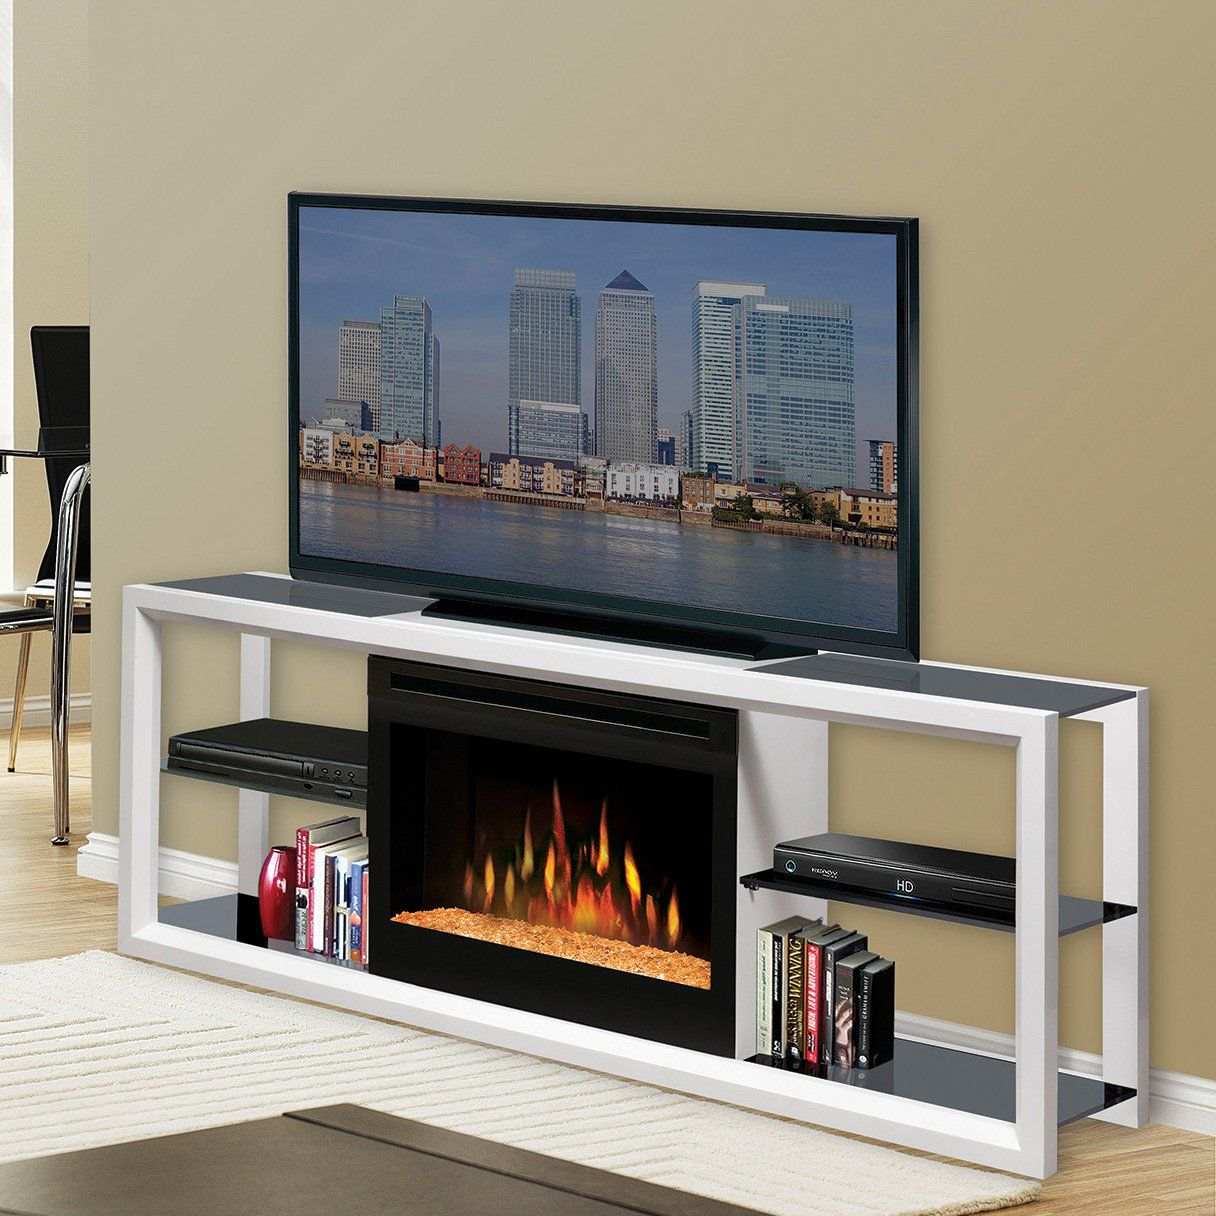 inspirational diy tv stand ideas for your room home diy tv